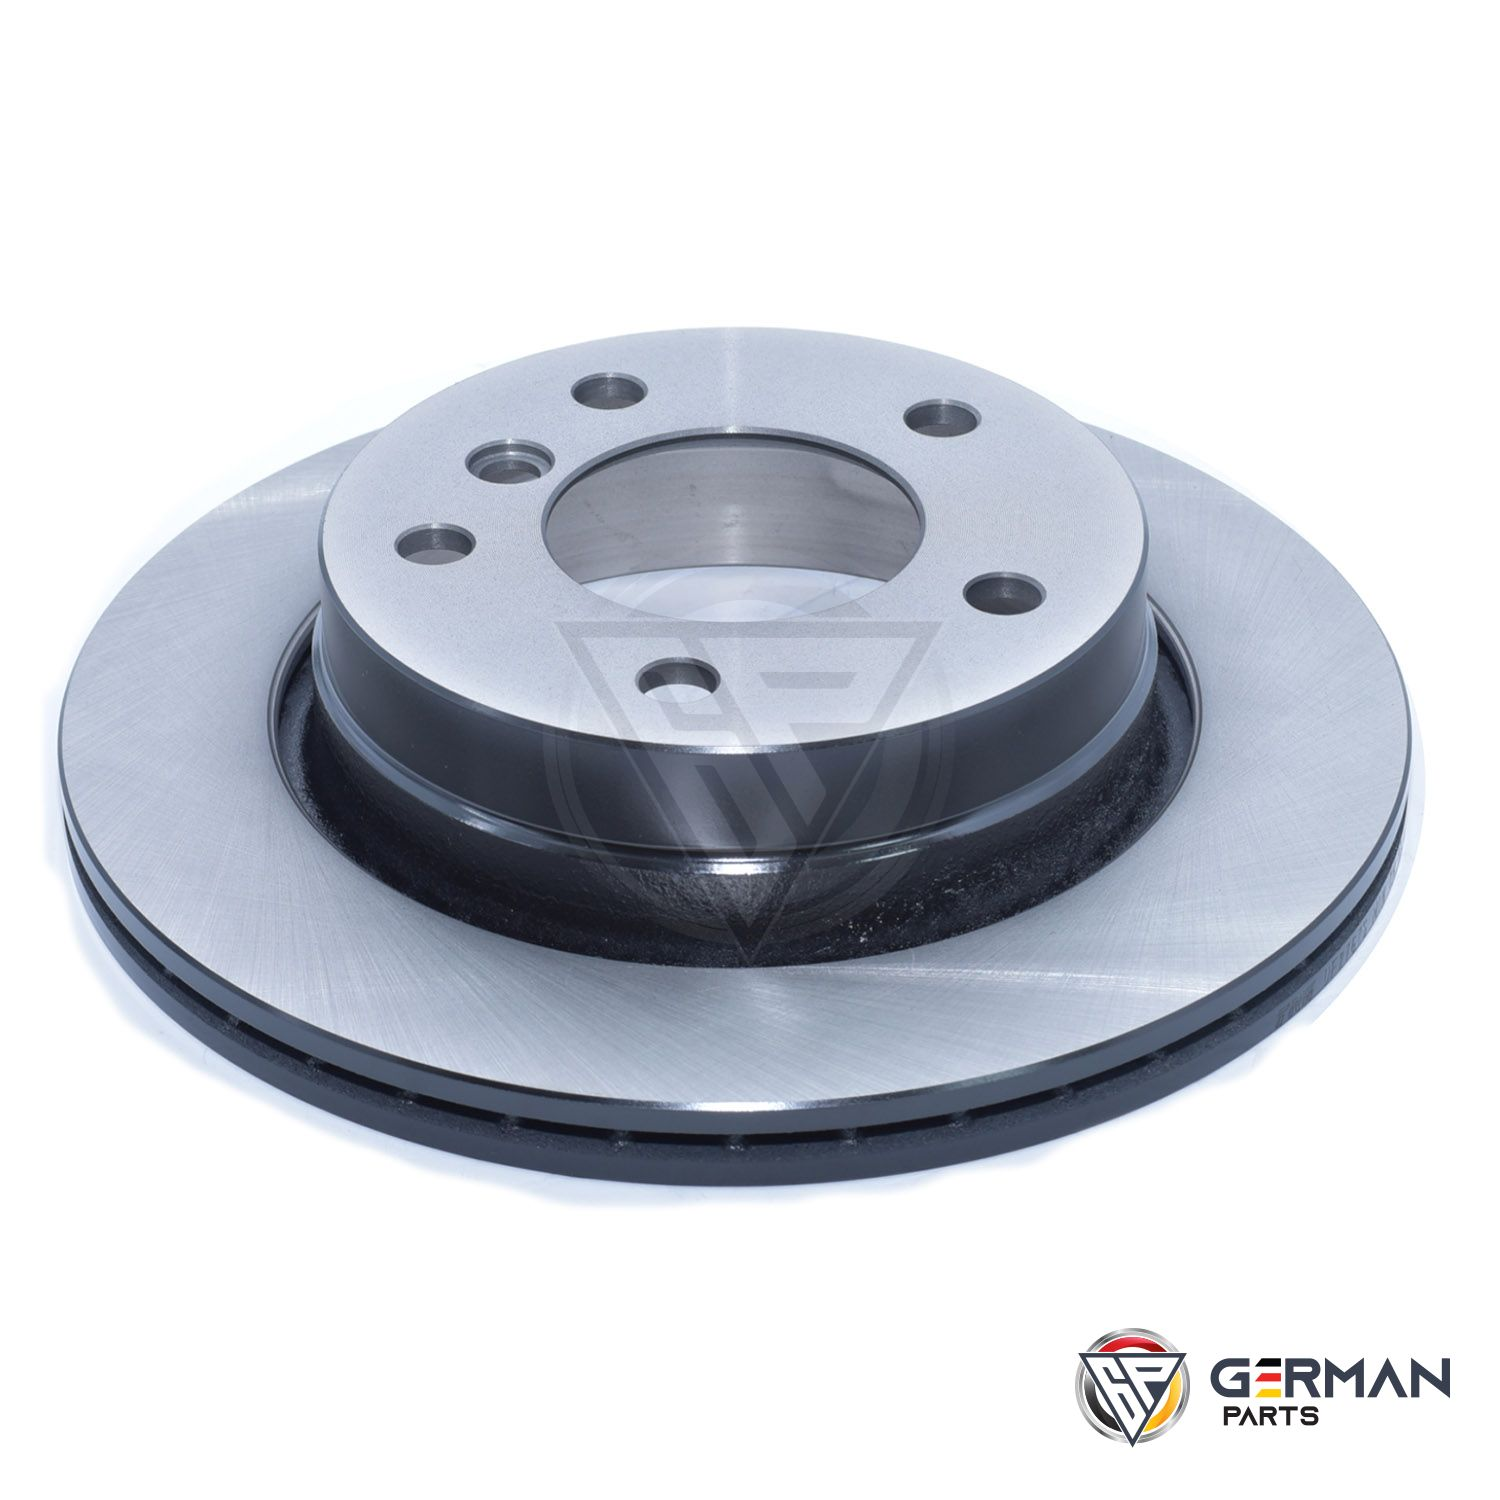 Buy TRW Rear Brake Disc 34211165211 - German Parts